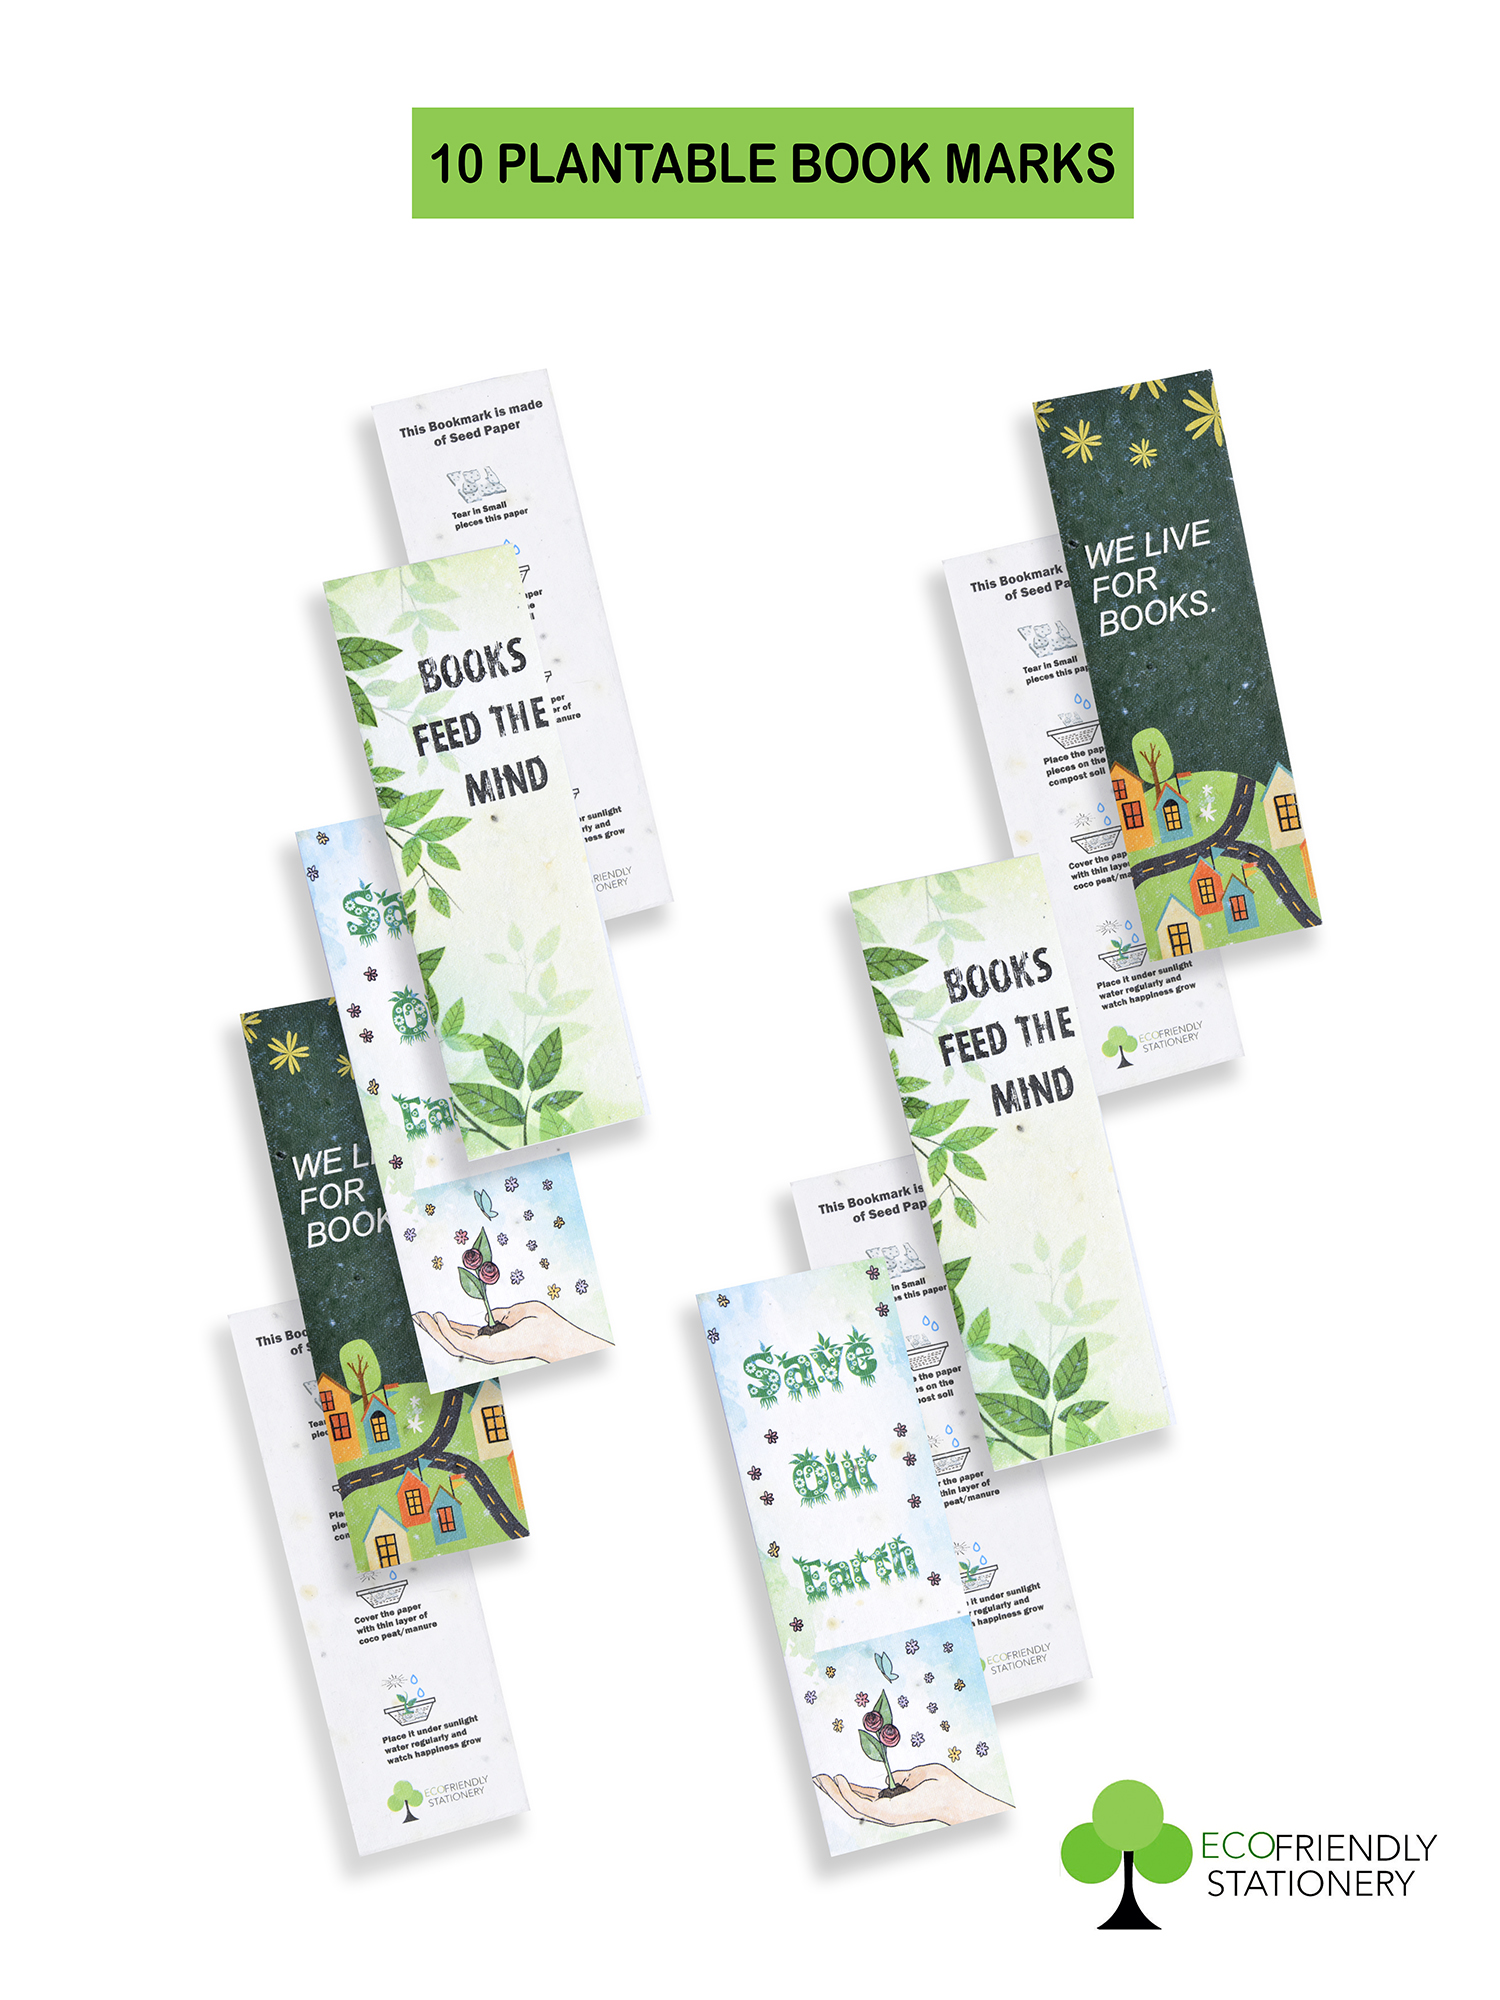 Recyclable Paper Plantable Seed BookMark